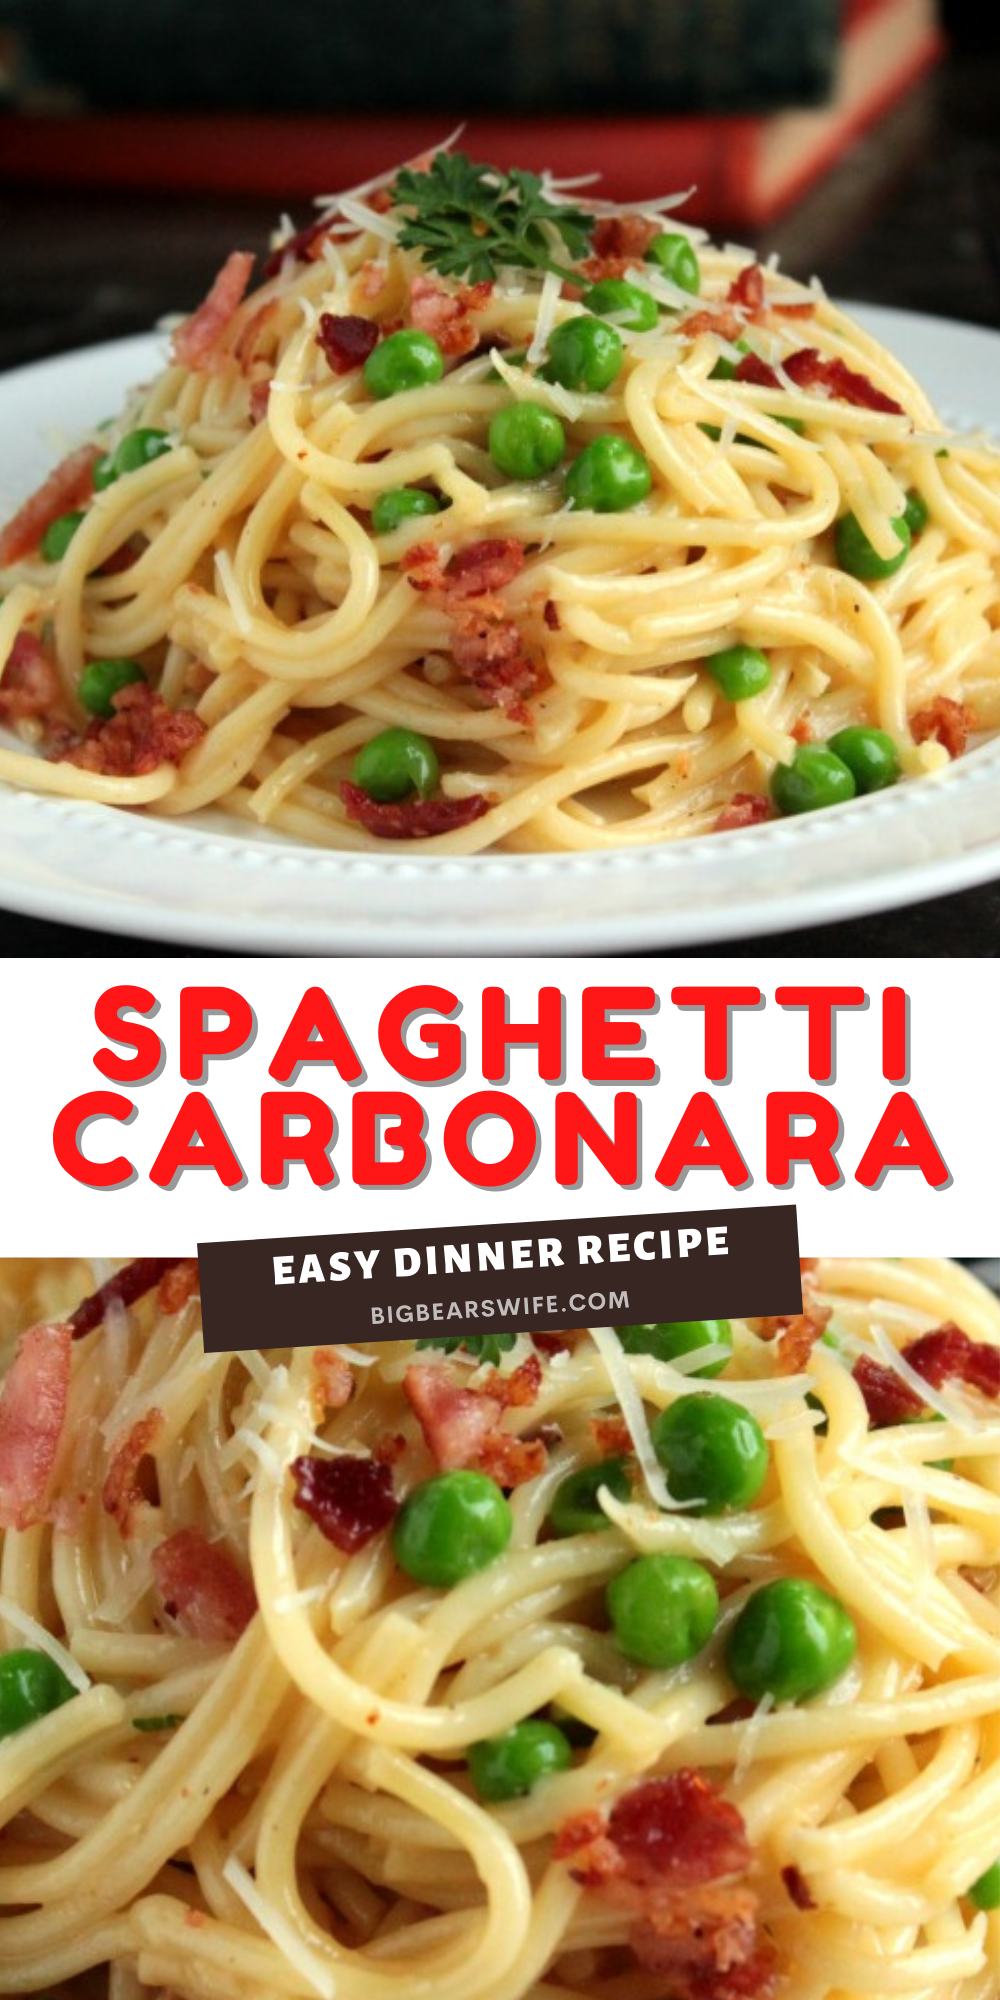 This Spaghetti Carbonara is quick to fix and I haven't met anyone (yet) that doesn't fall in love with it when we make it!   via @bigbearswife